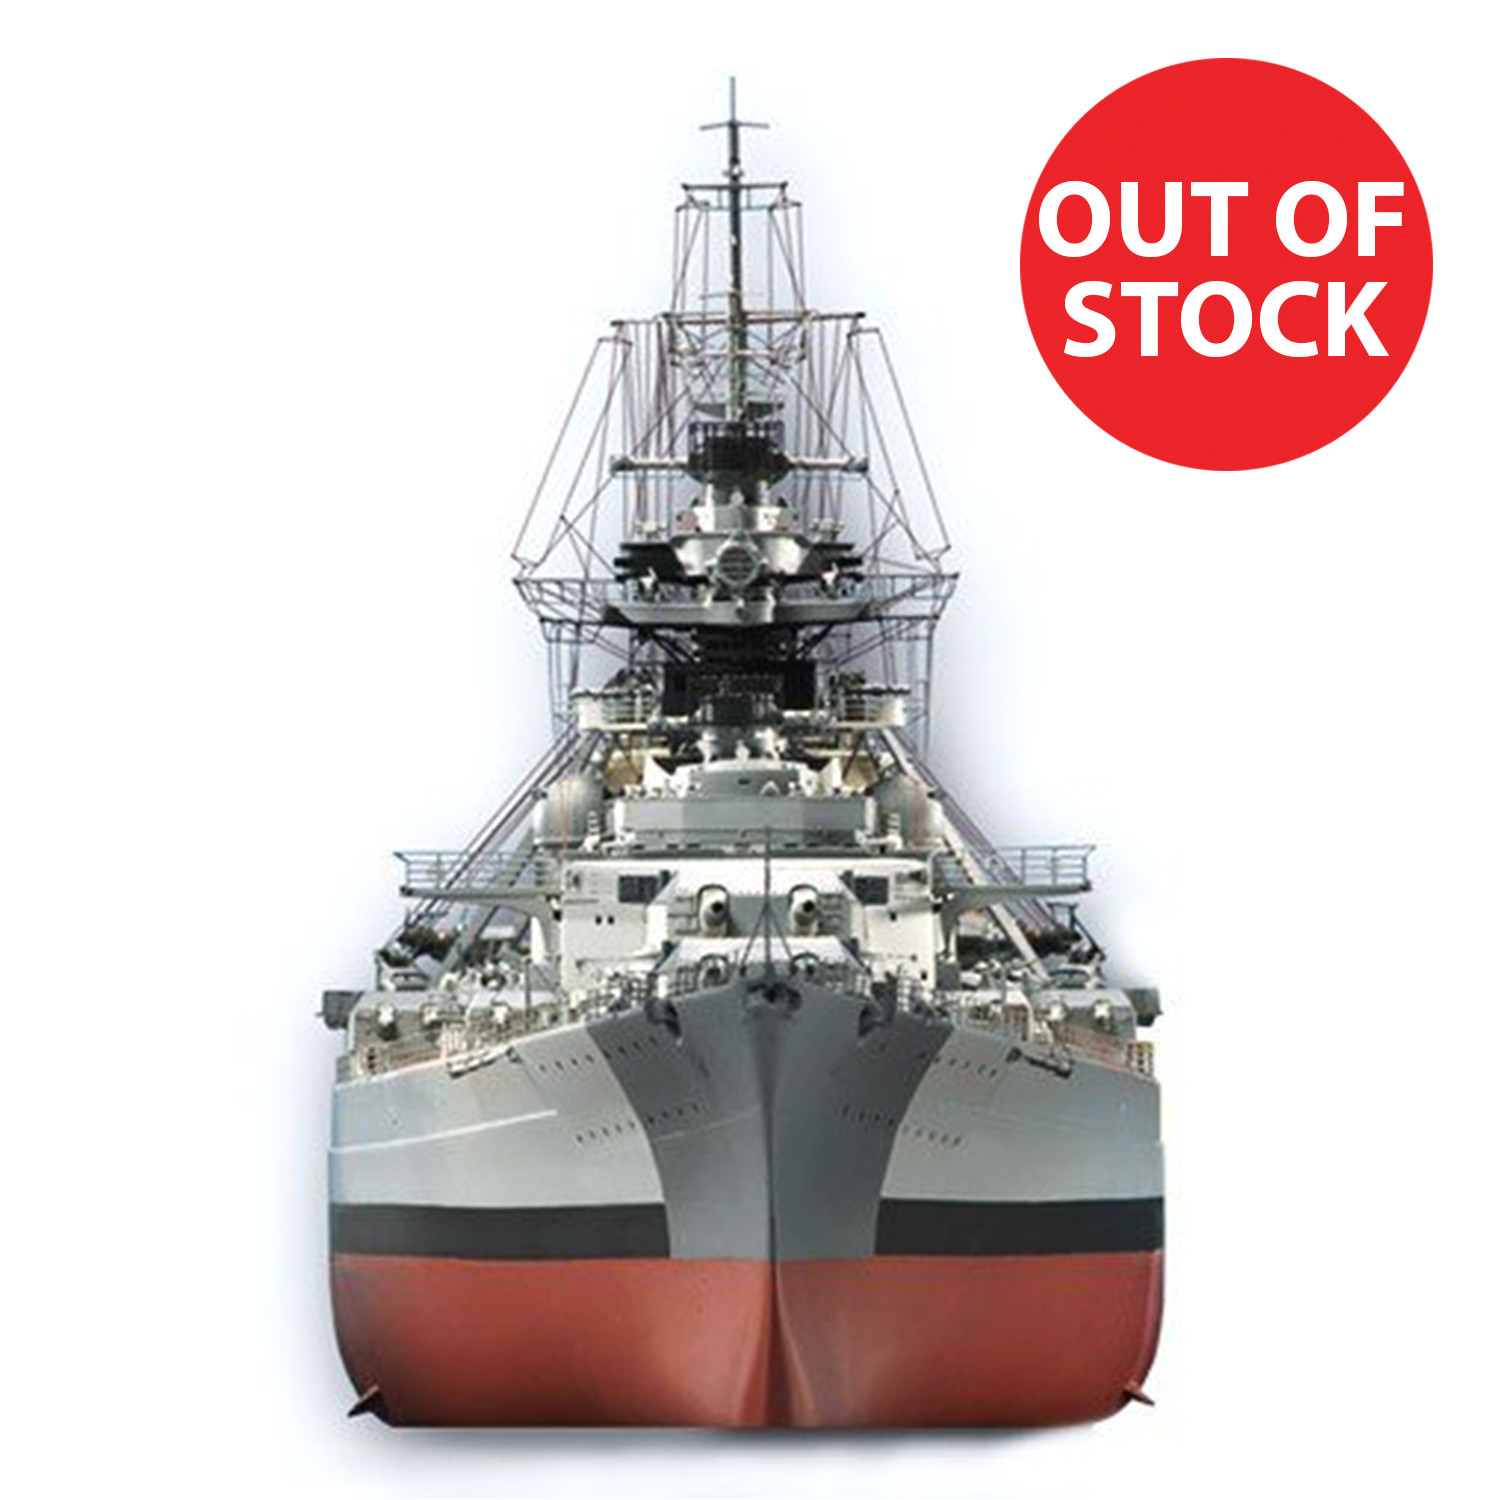 bismarck 1 200 model ship full kit modelspace. Black Bedroom Furniture Sets. Home Design Ideas